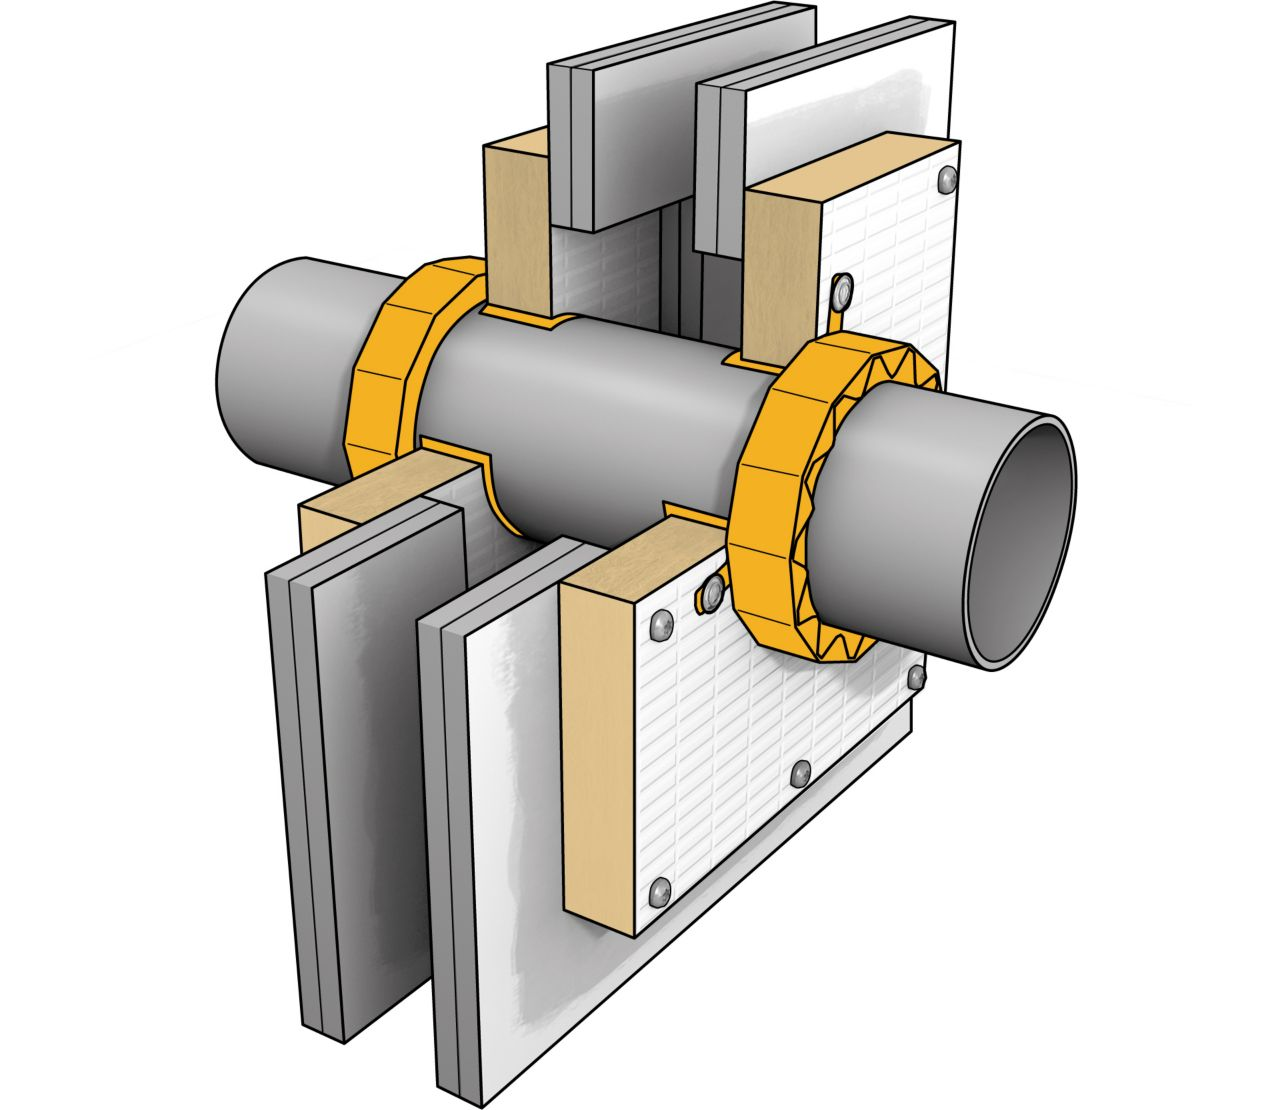 Illustration of passive fire protection collar, board and sealant at pipe penetration